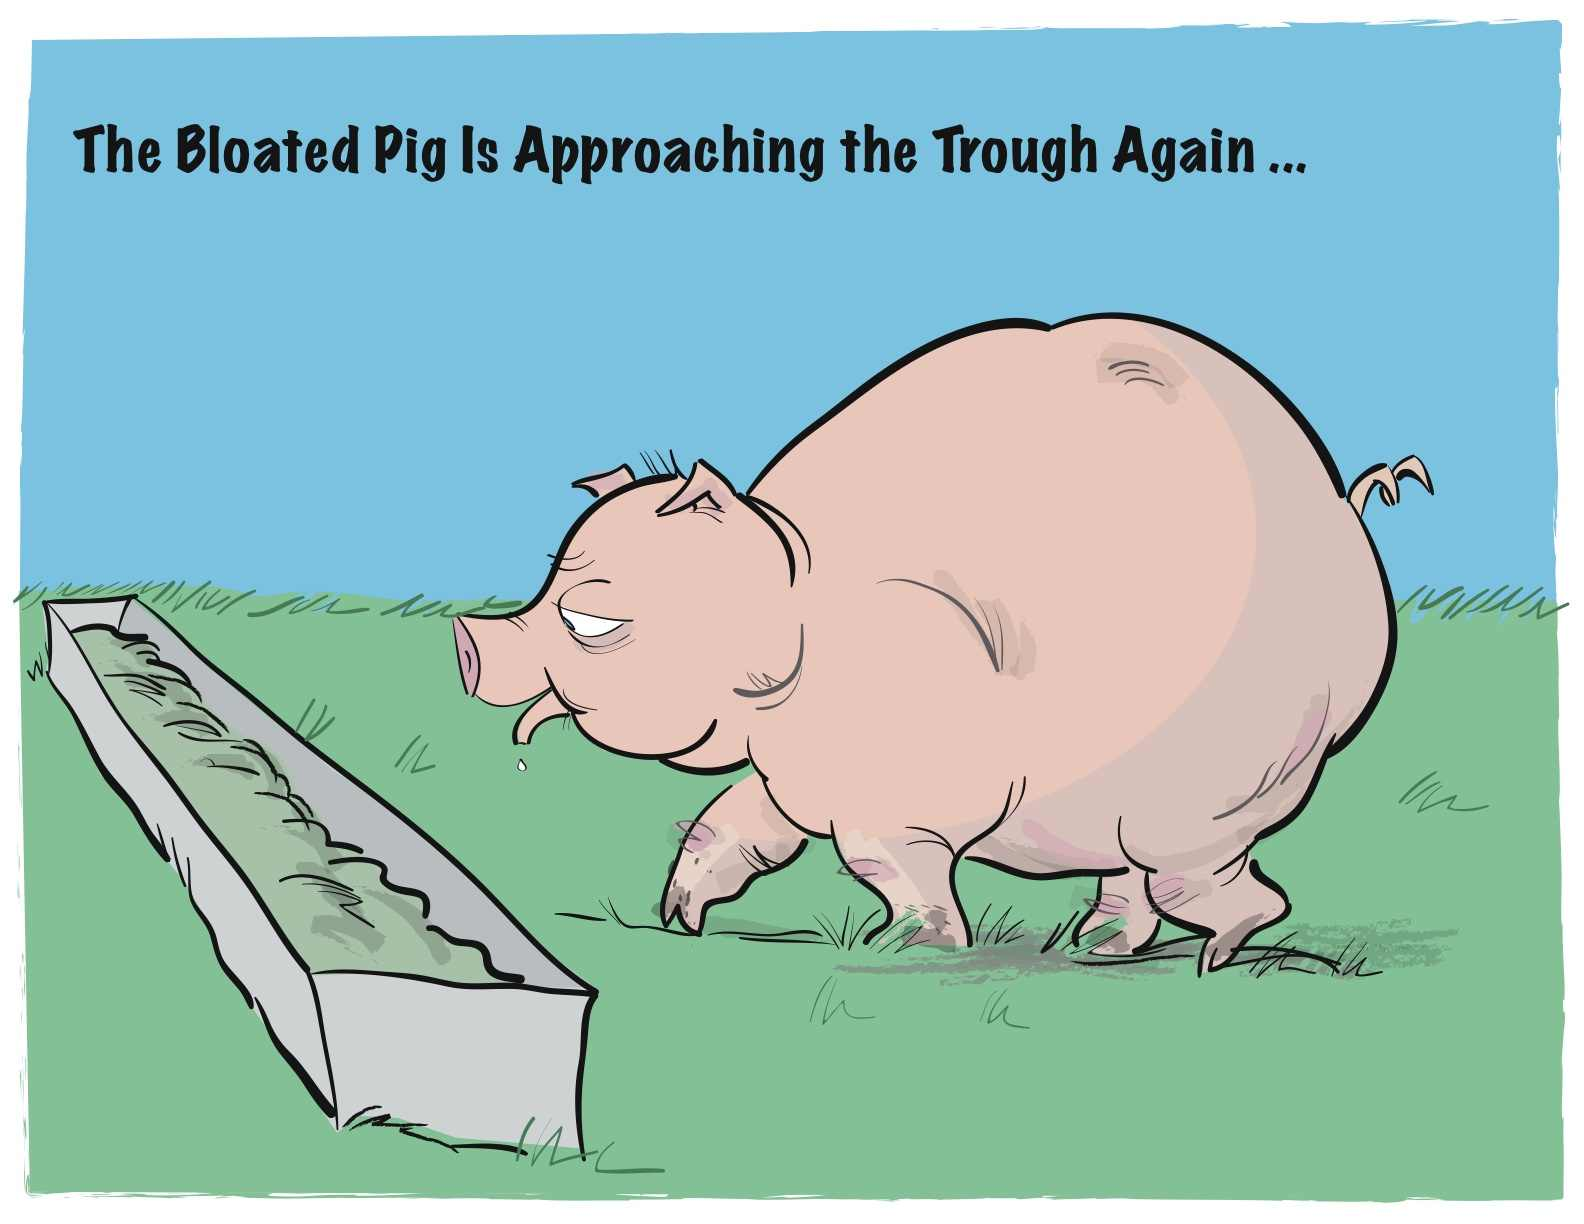 bloated-pig-approaching-trough